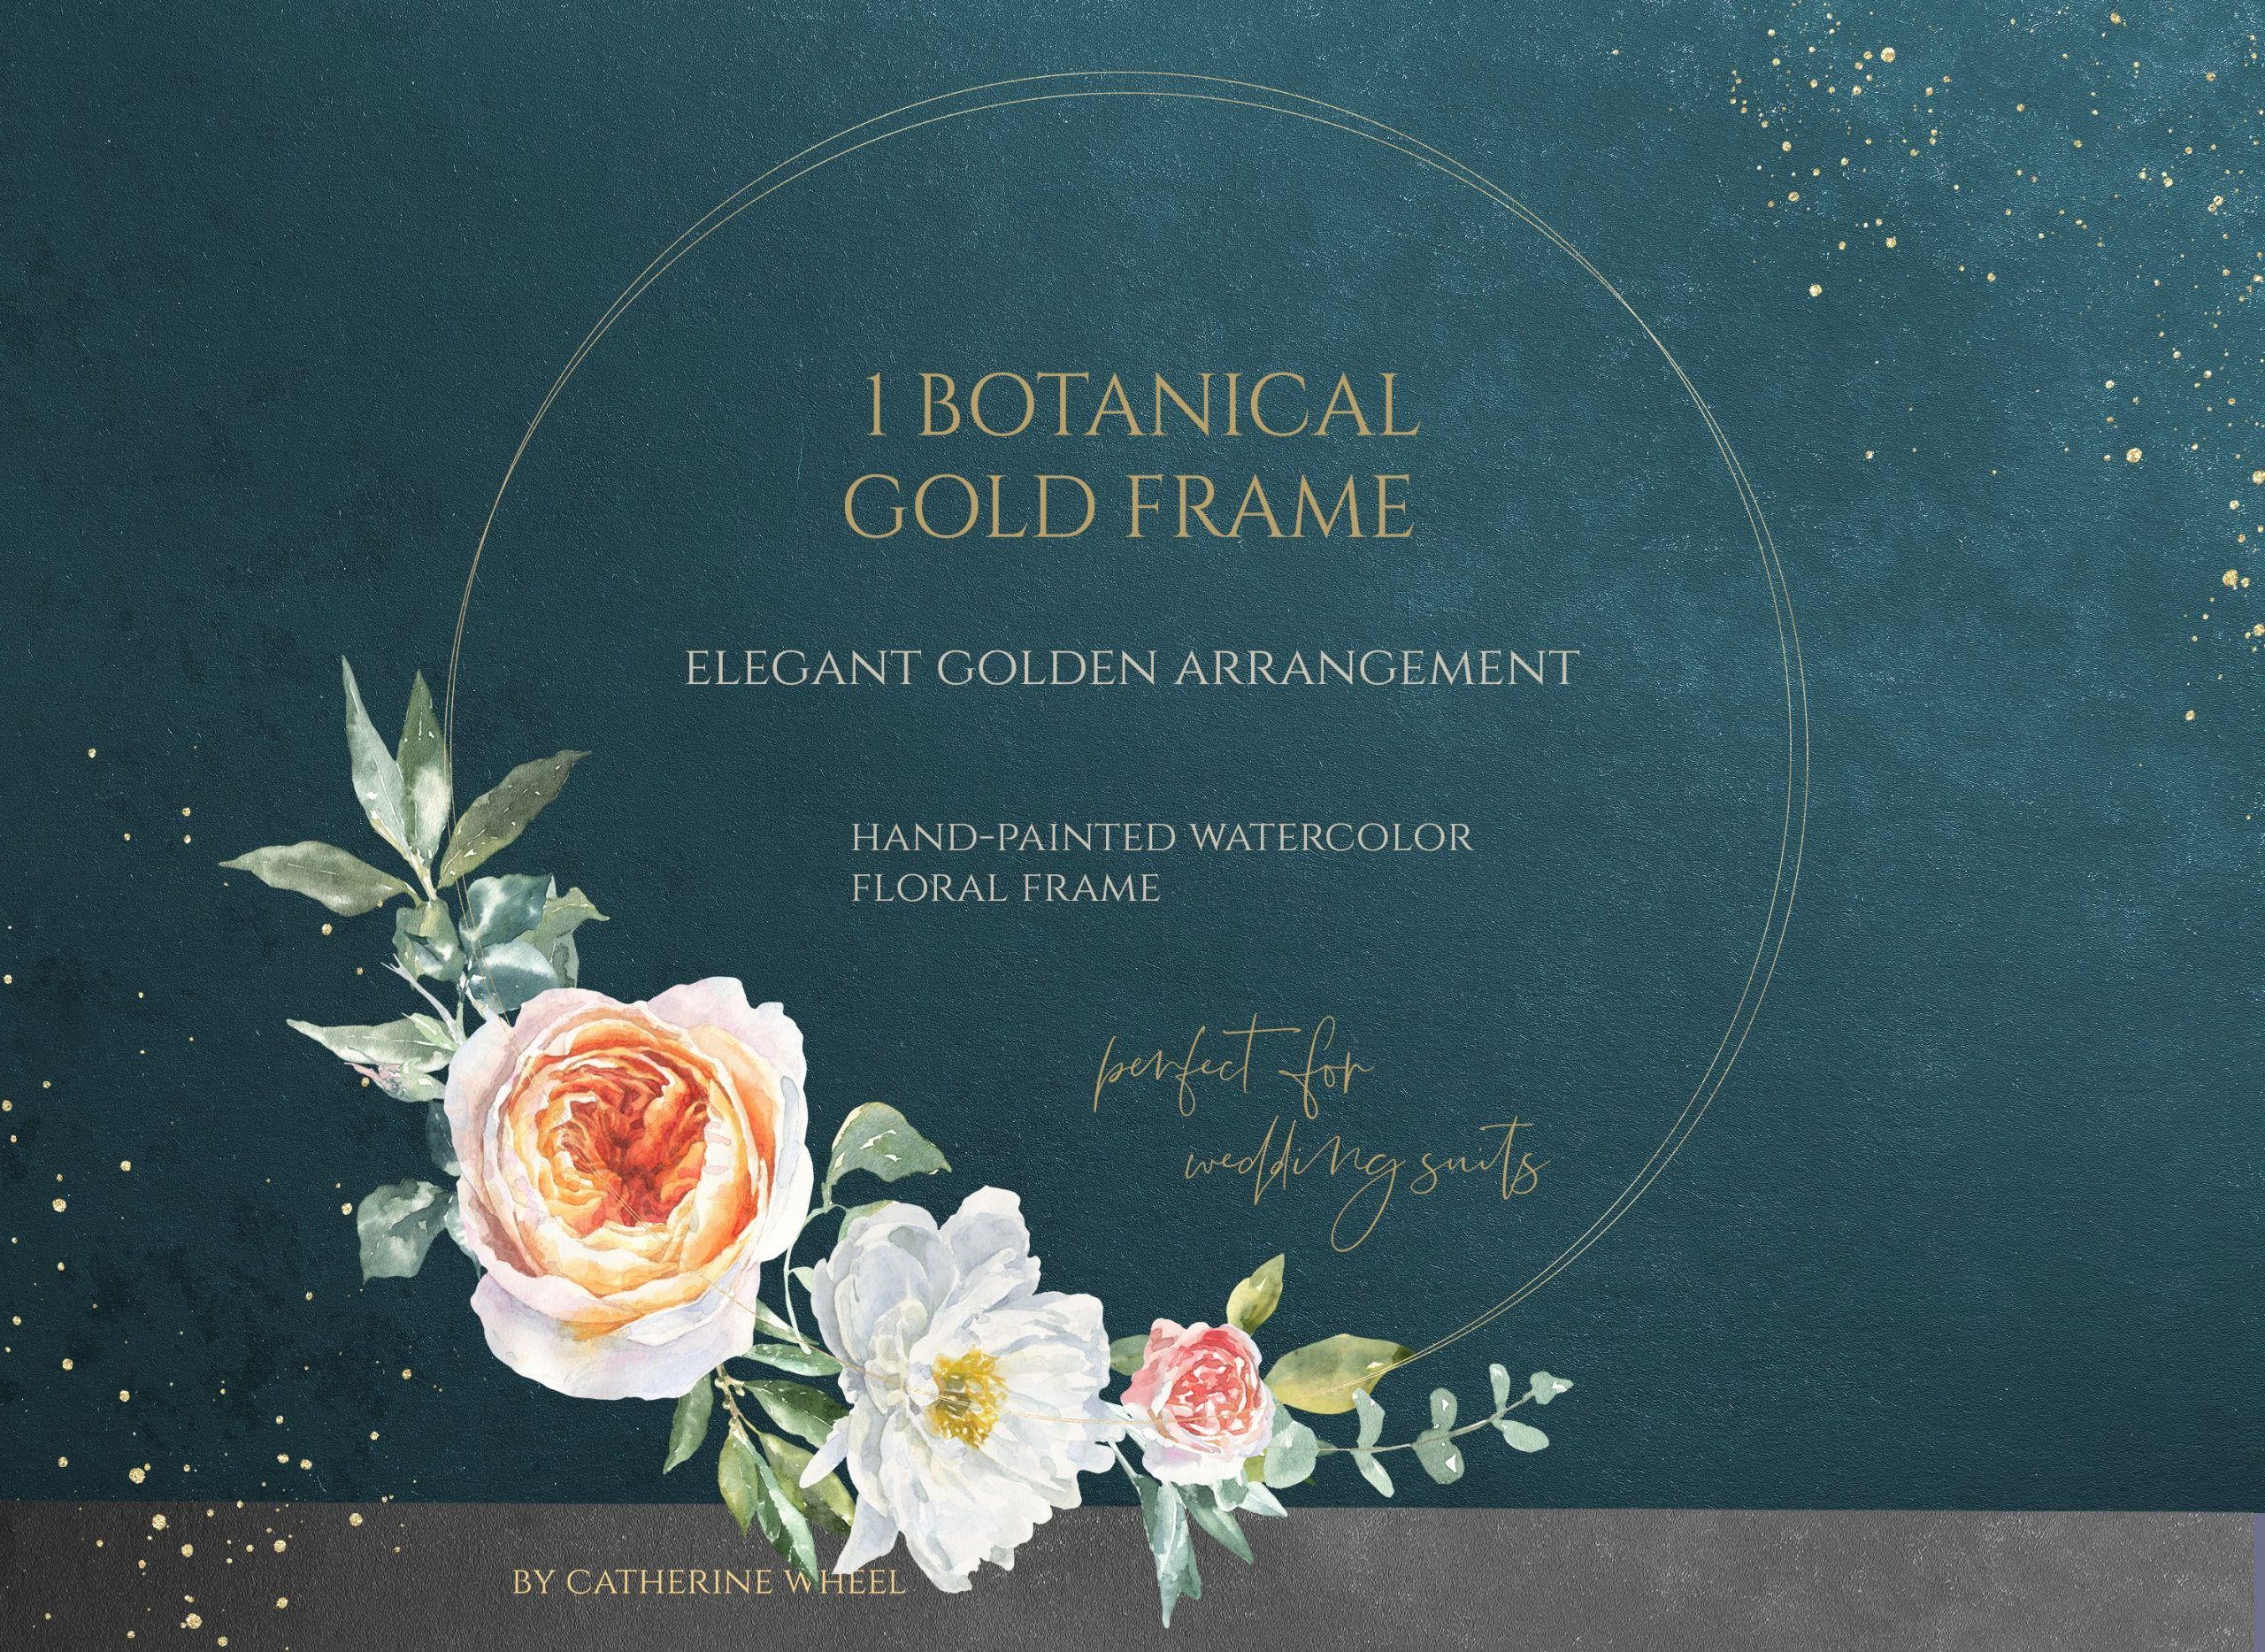 Watercolor Gold Circle Frame Round Gold Floral Geometric Frame Golden Logo Wedding Invite Flower Circle Wedding Logos Gold Circle Frames Peony Illustration